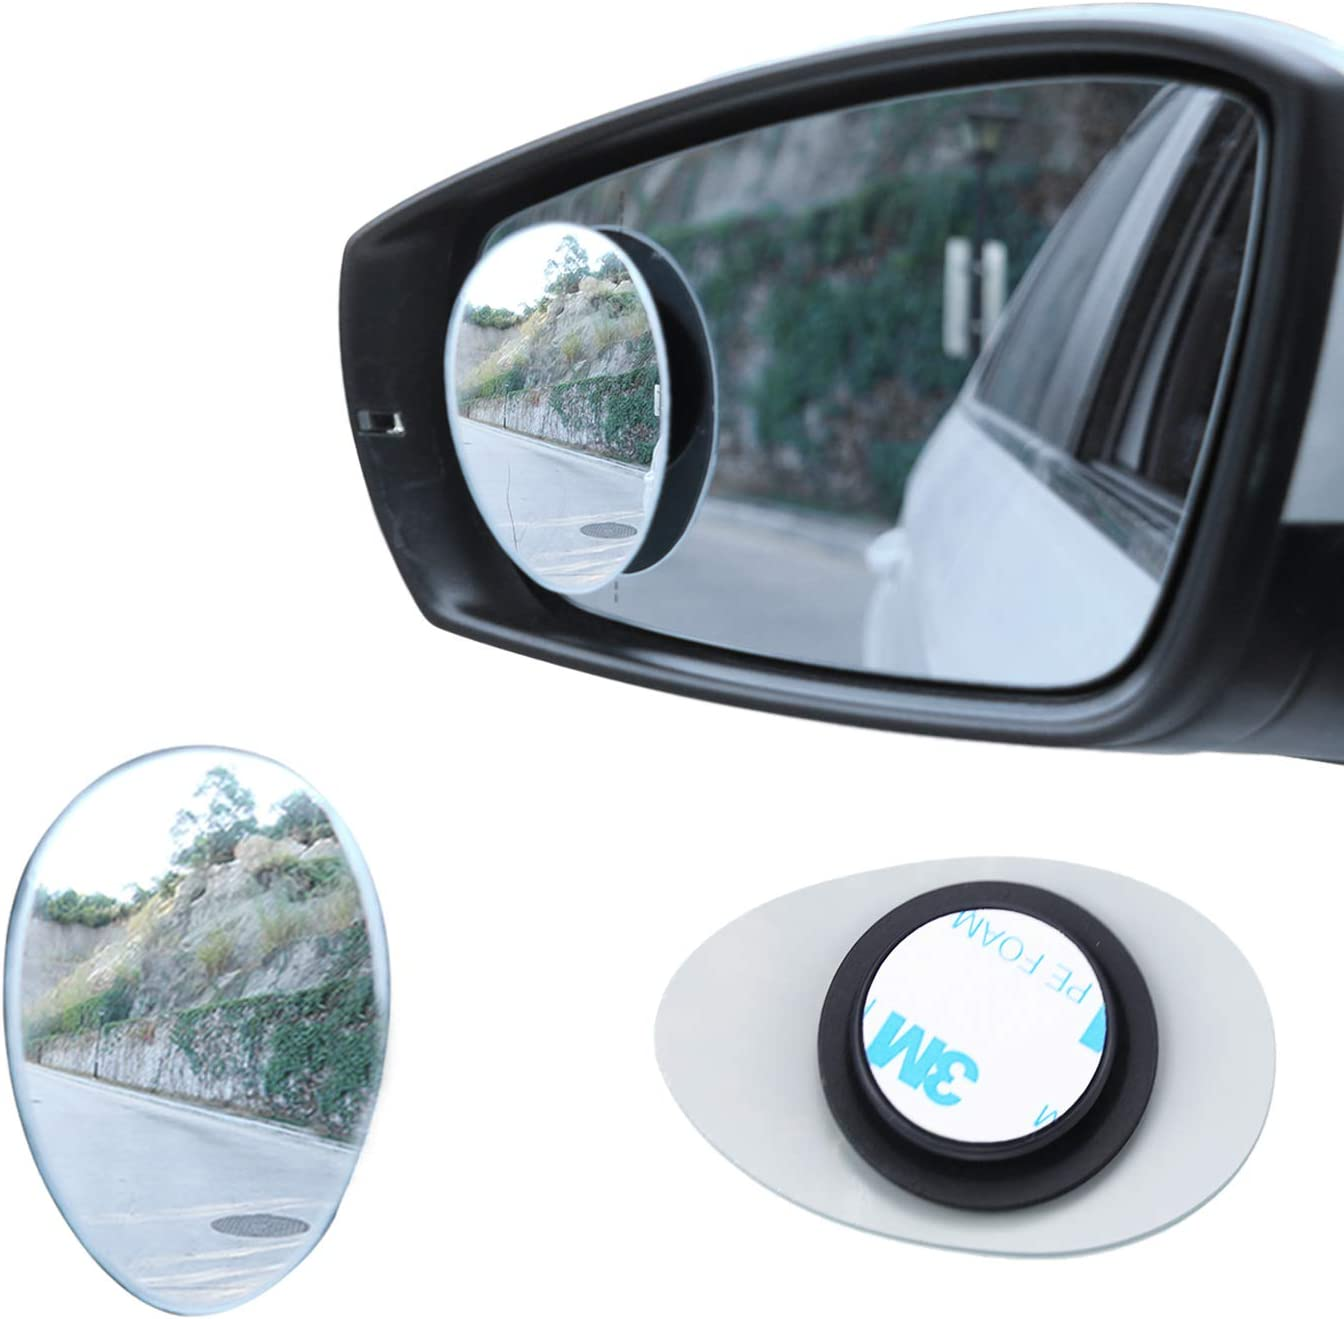 LivTee Blind Spot Mirror, Oval HD Glass Frameless Convex RearView Mirror with wide angle Adjustable Stick for Cars SUV and Trucks, Pack of 2